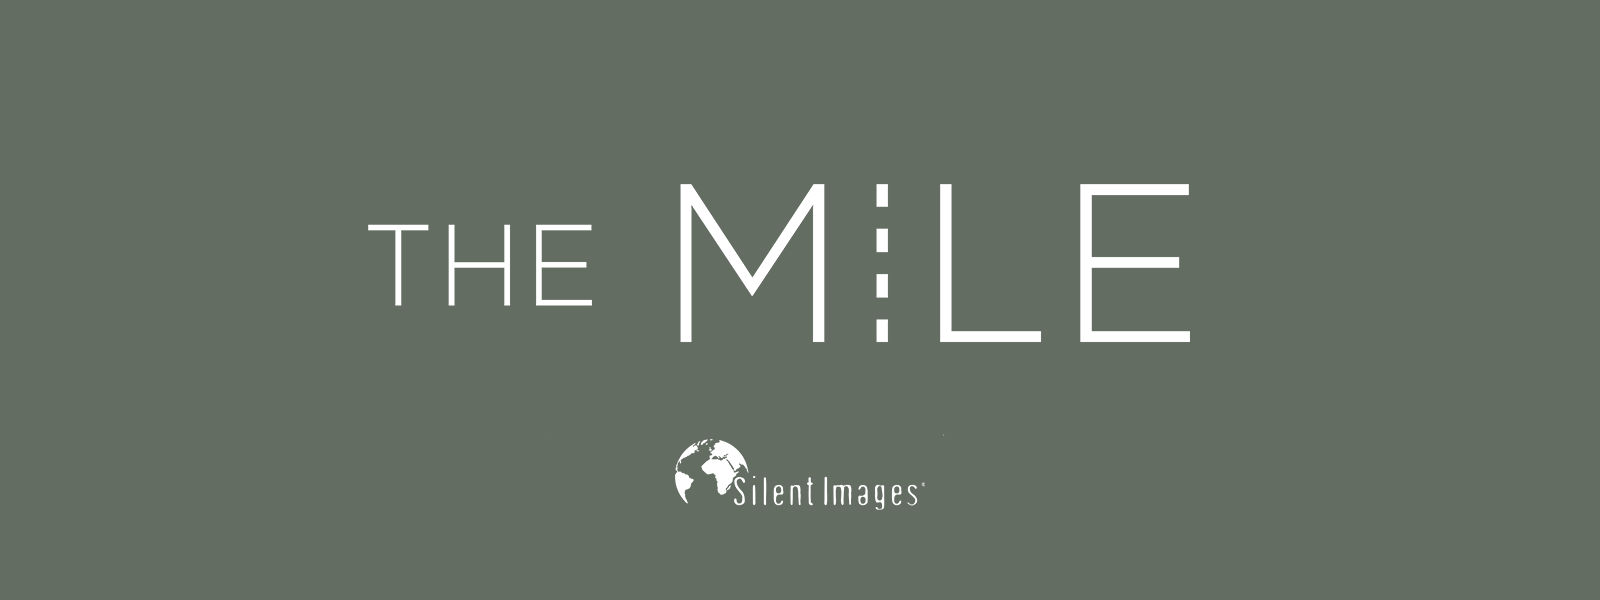 The Mile Project